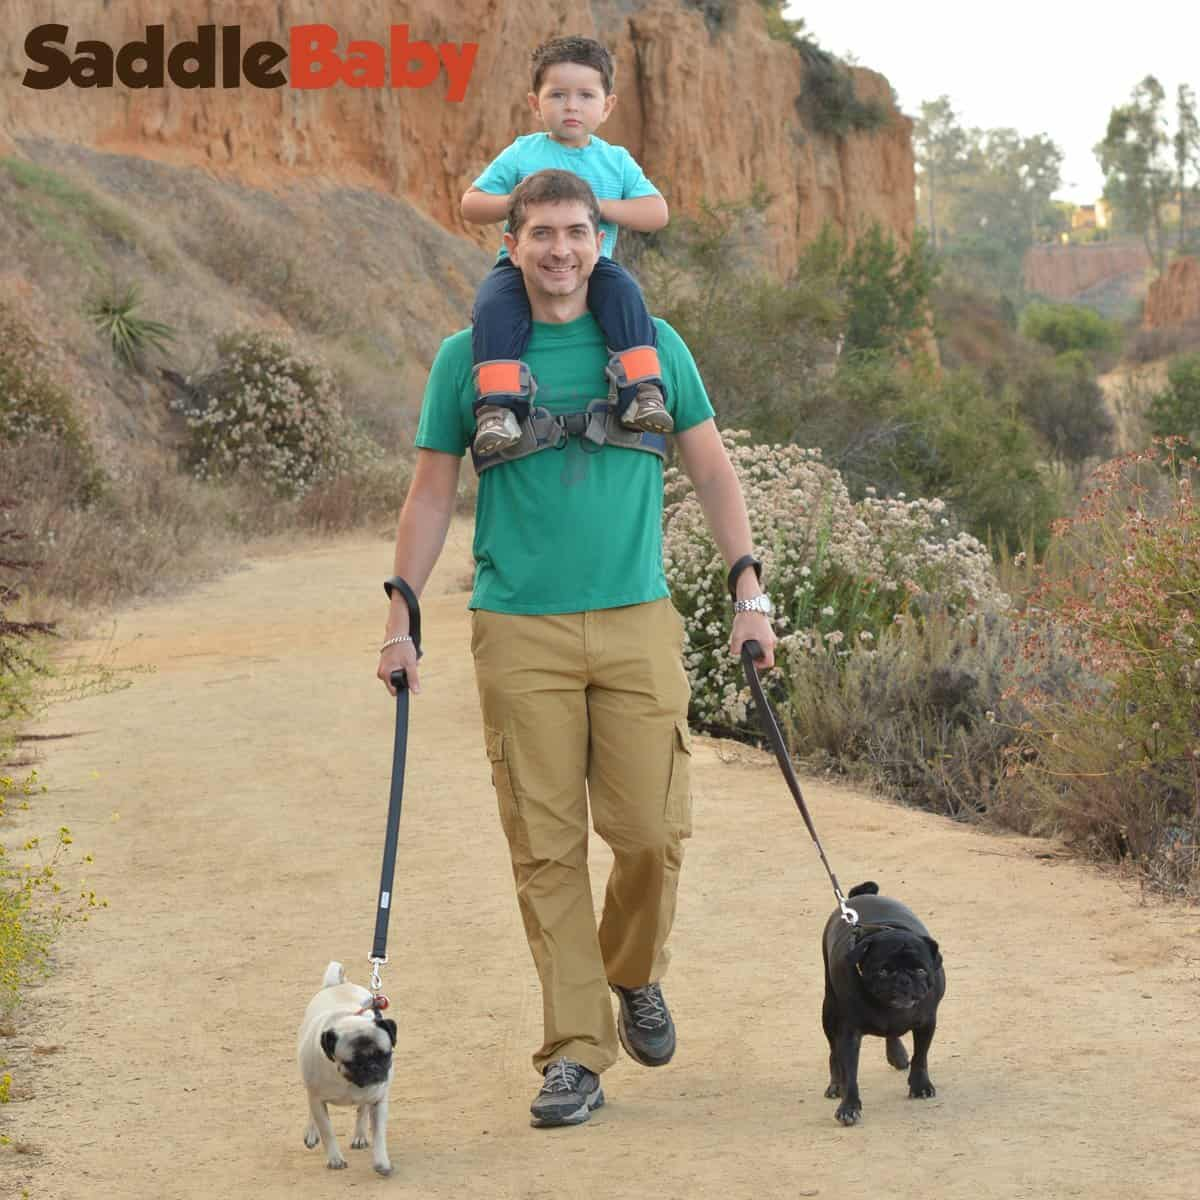 SaddleBaby Shoulder Carrier Hiking Man With Kid and Dogs